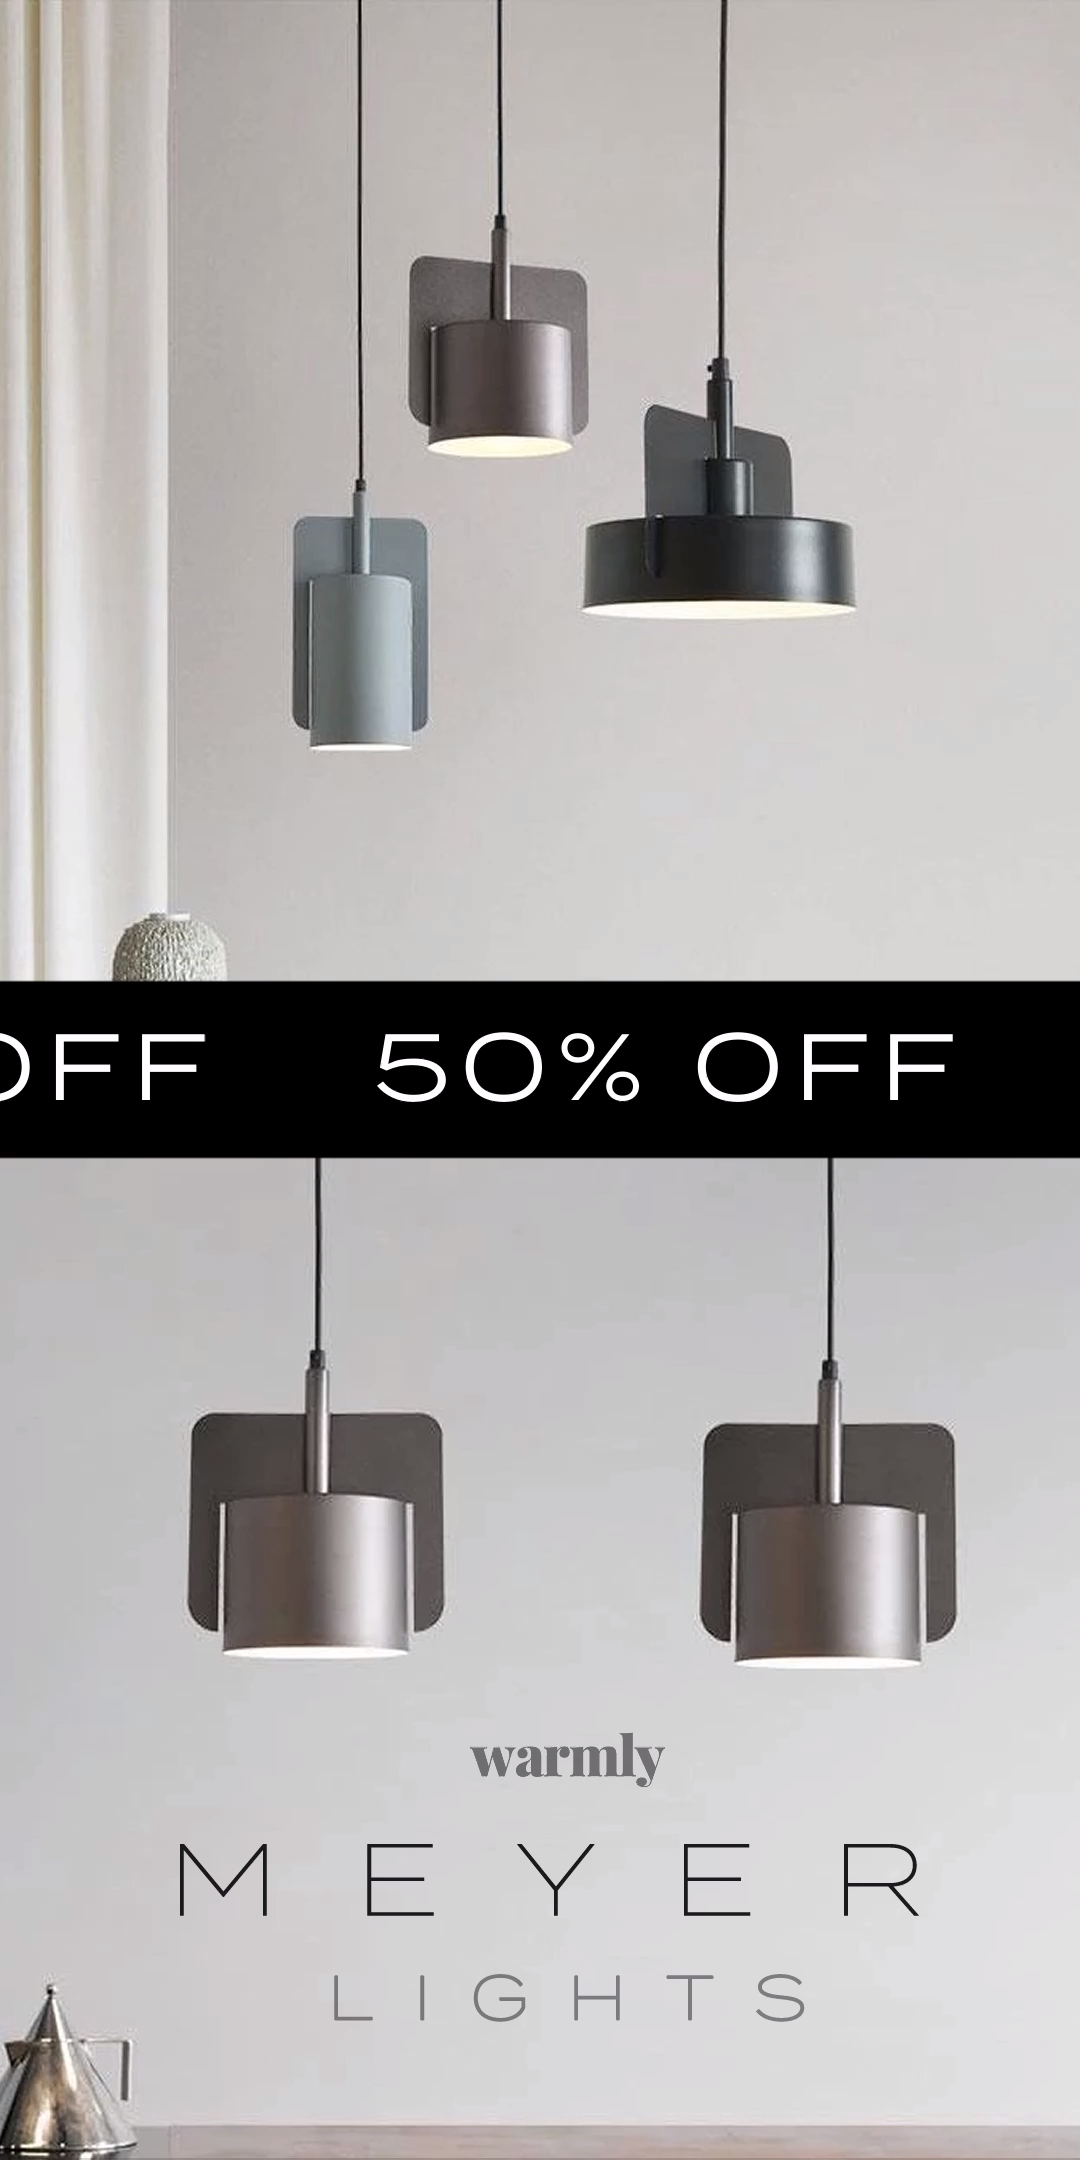 Meyer Nordic Lamps - Warmly #kitchenextensions